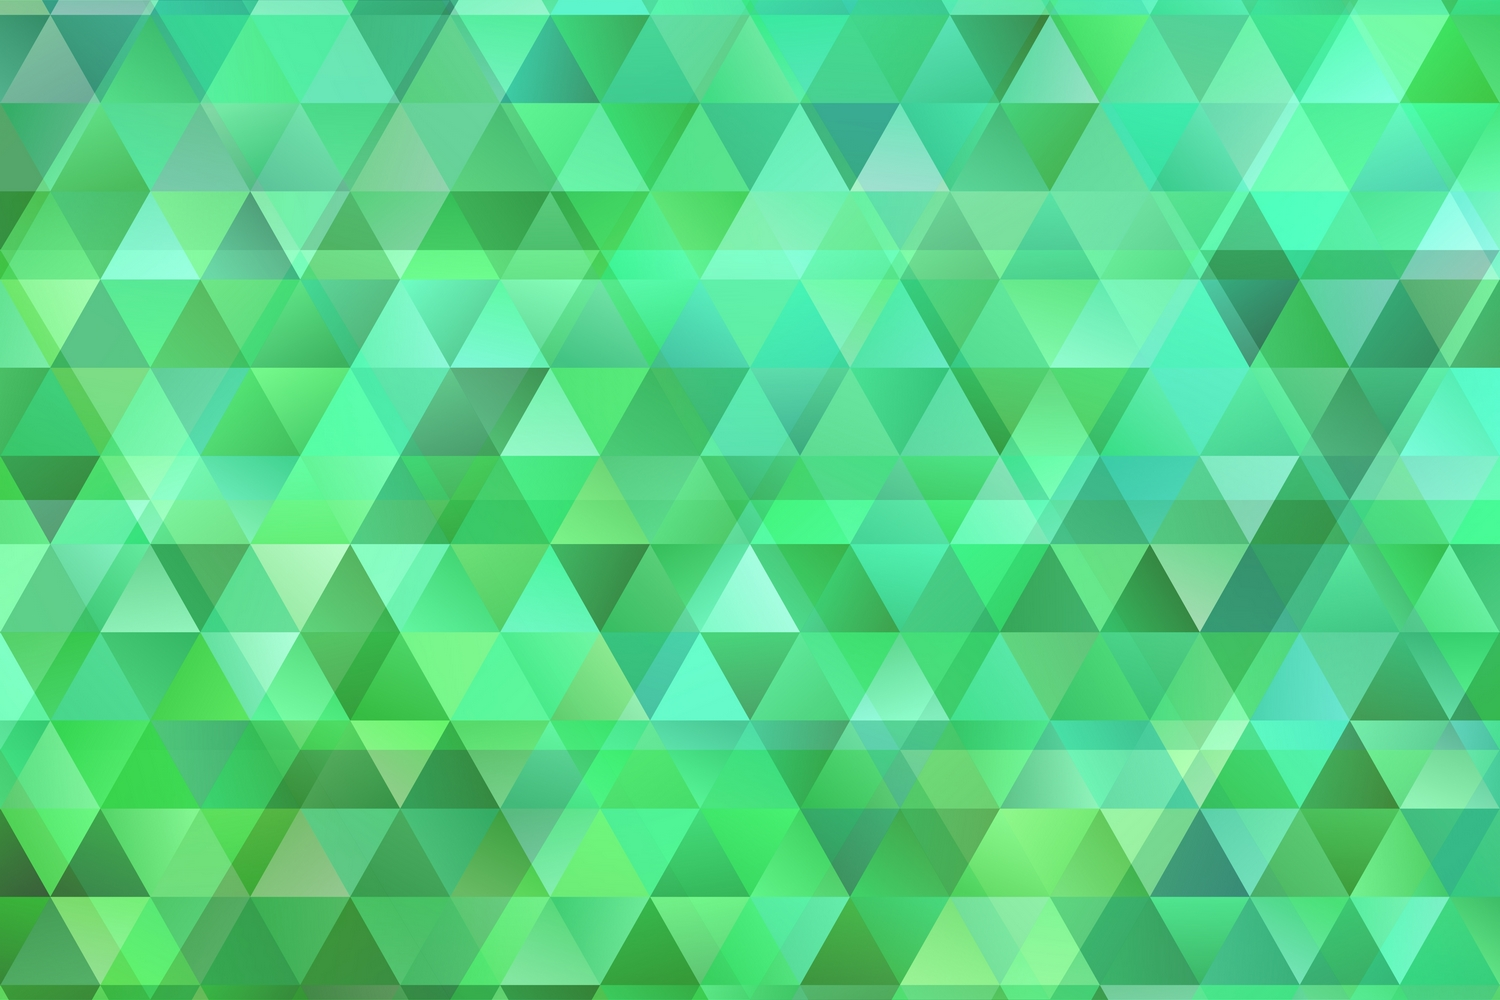 24 Gradient Polygon Backgrounds AI, EPS, JPG 5000x5000 example image 8